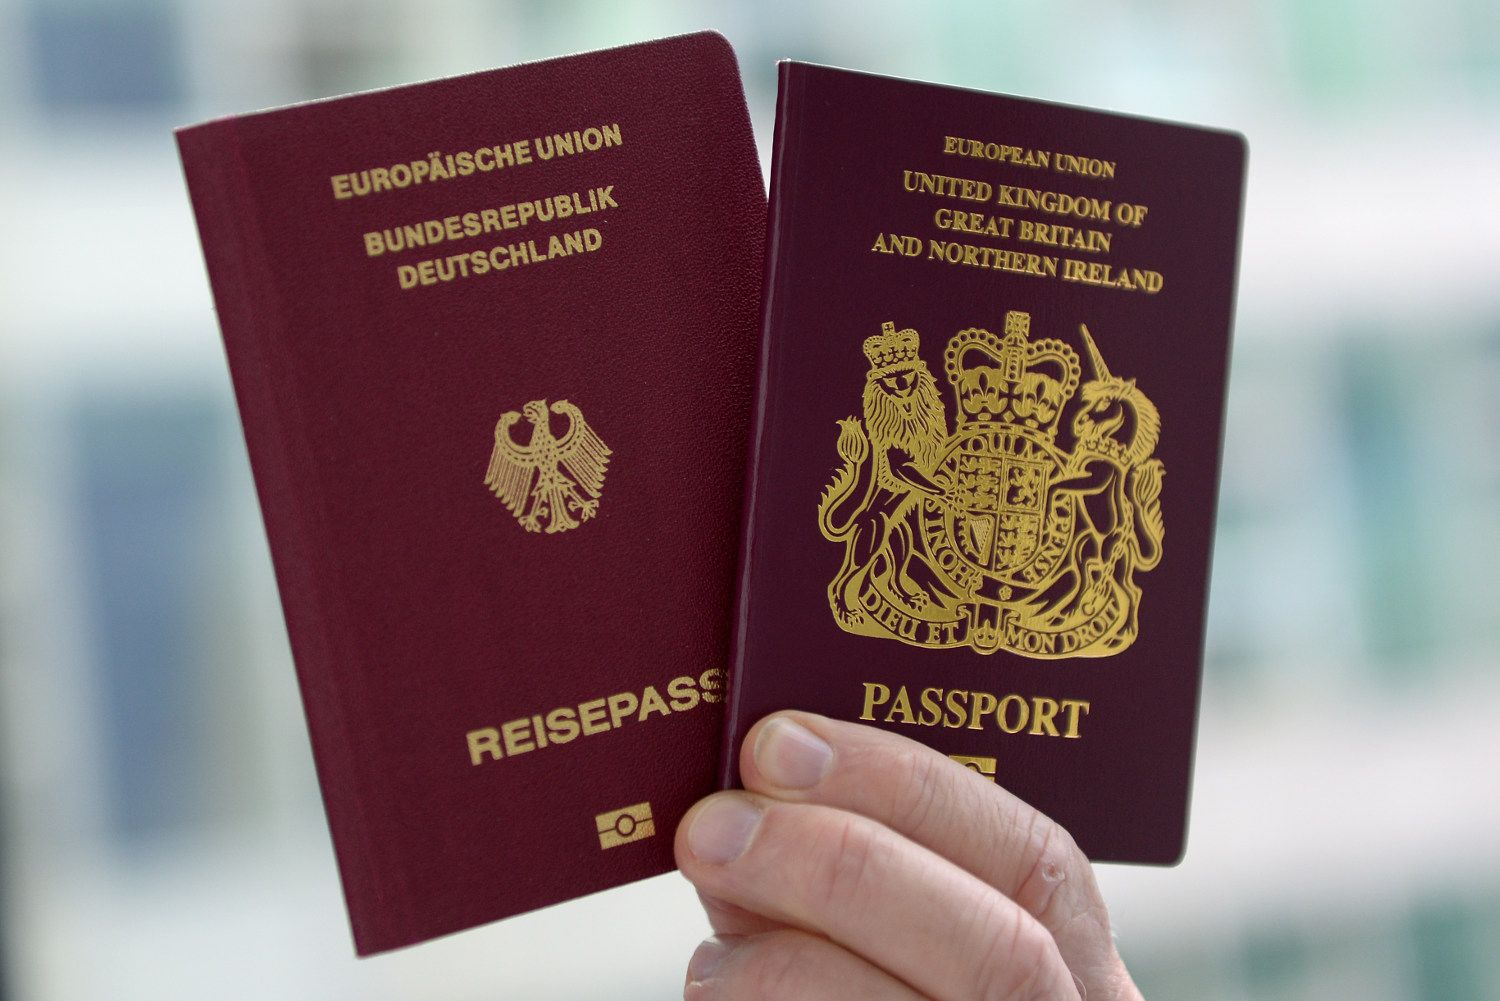 e20c1a04e9b2c887b4d6796a82d17a3e - How To Get Dual Citizenship In Usa And Philippines